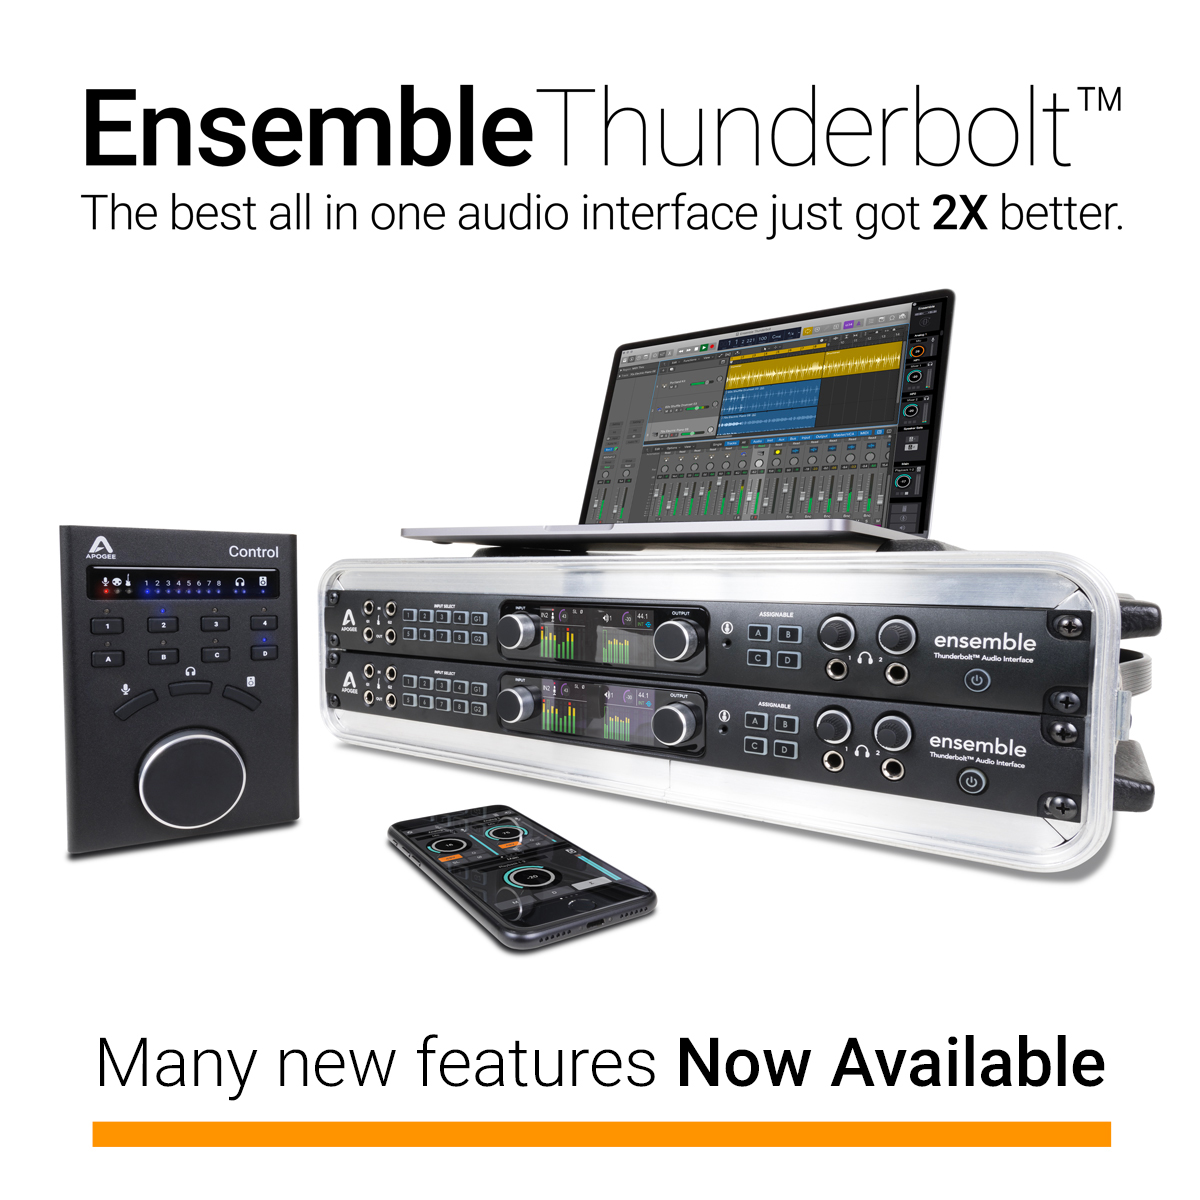 New Software and Features for Ensemble Thunderbolt - Now